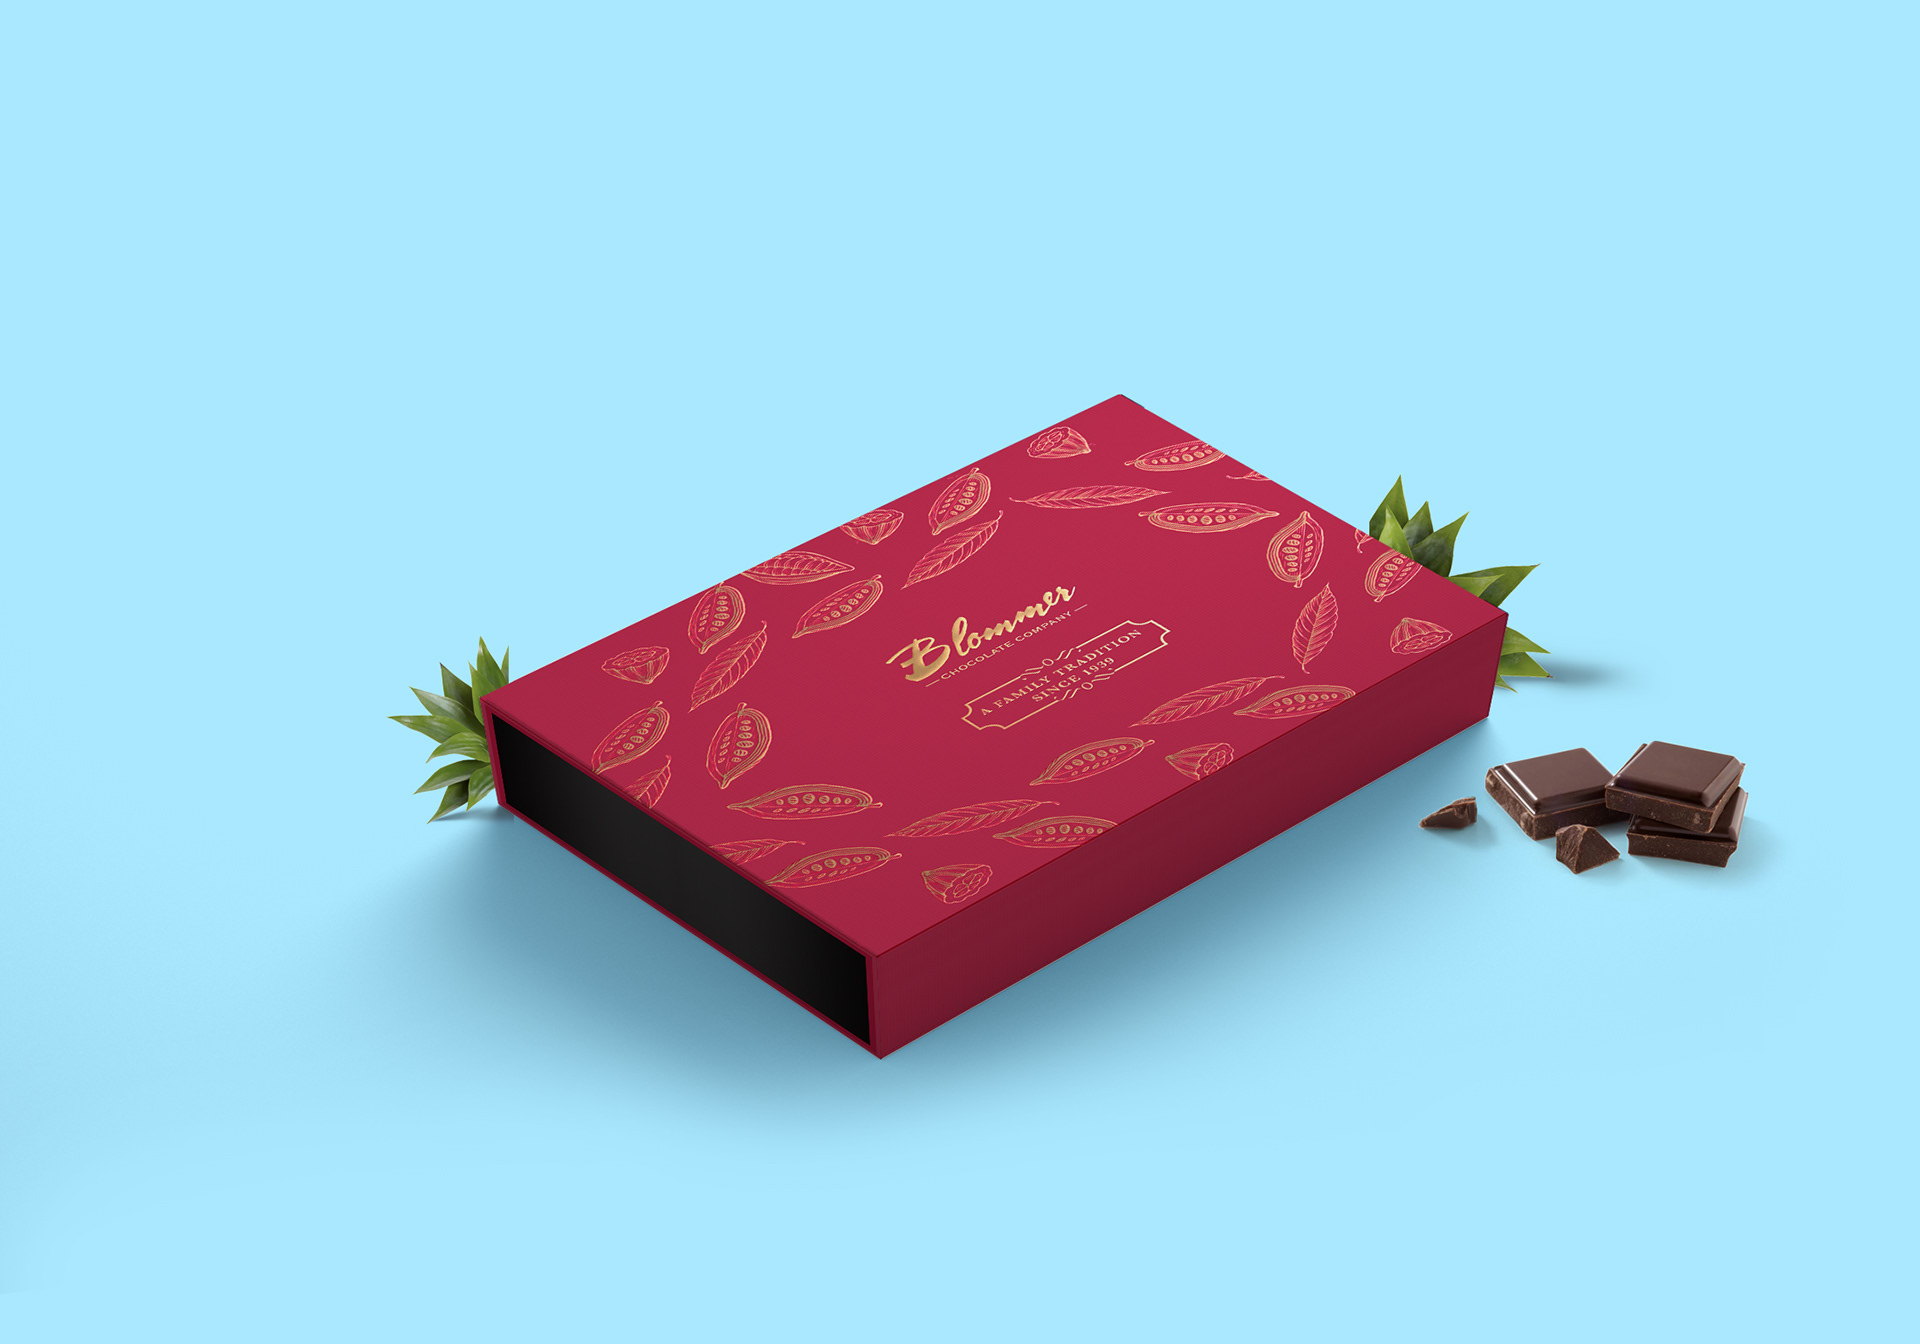 BloomerChocolate_GiftBox01